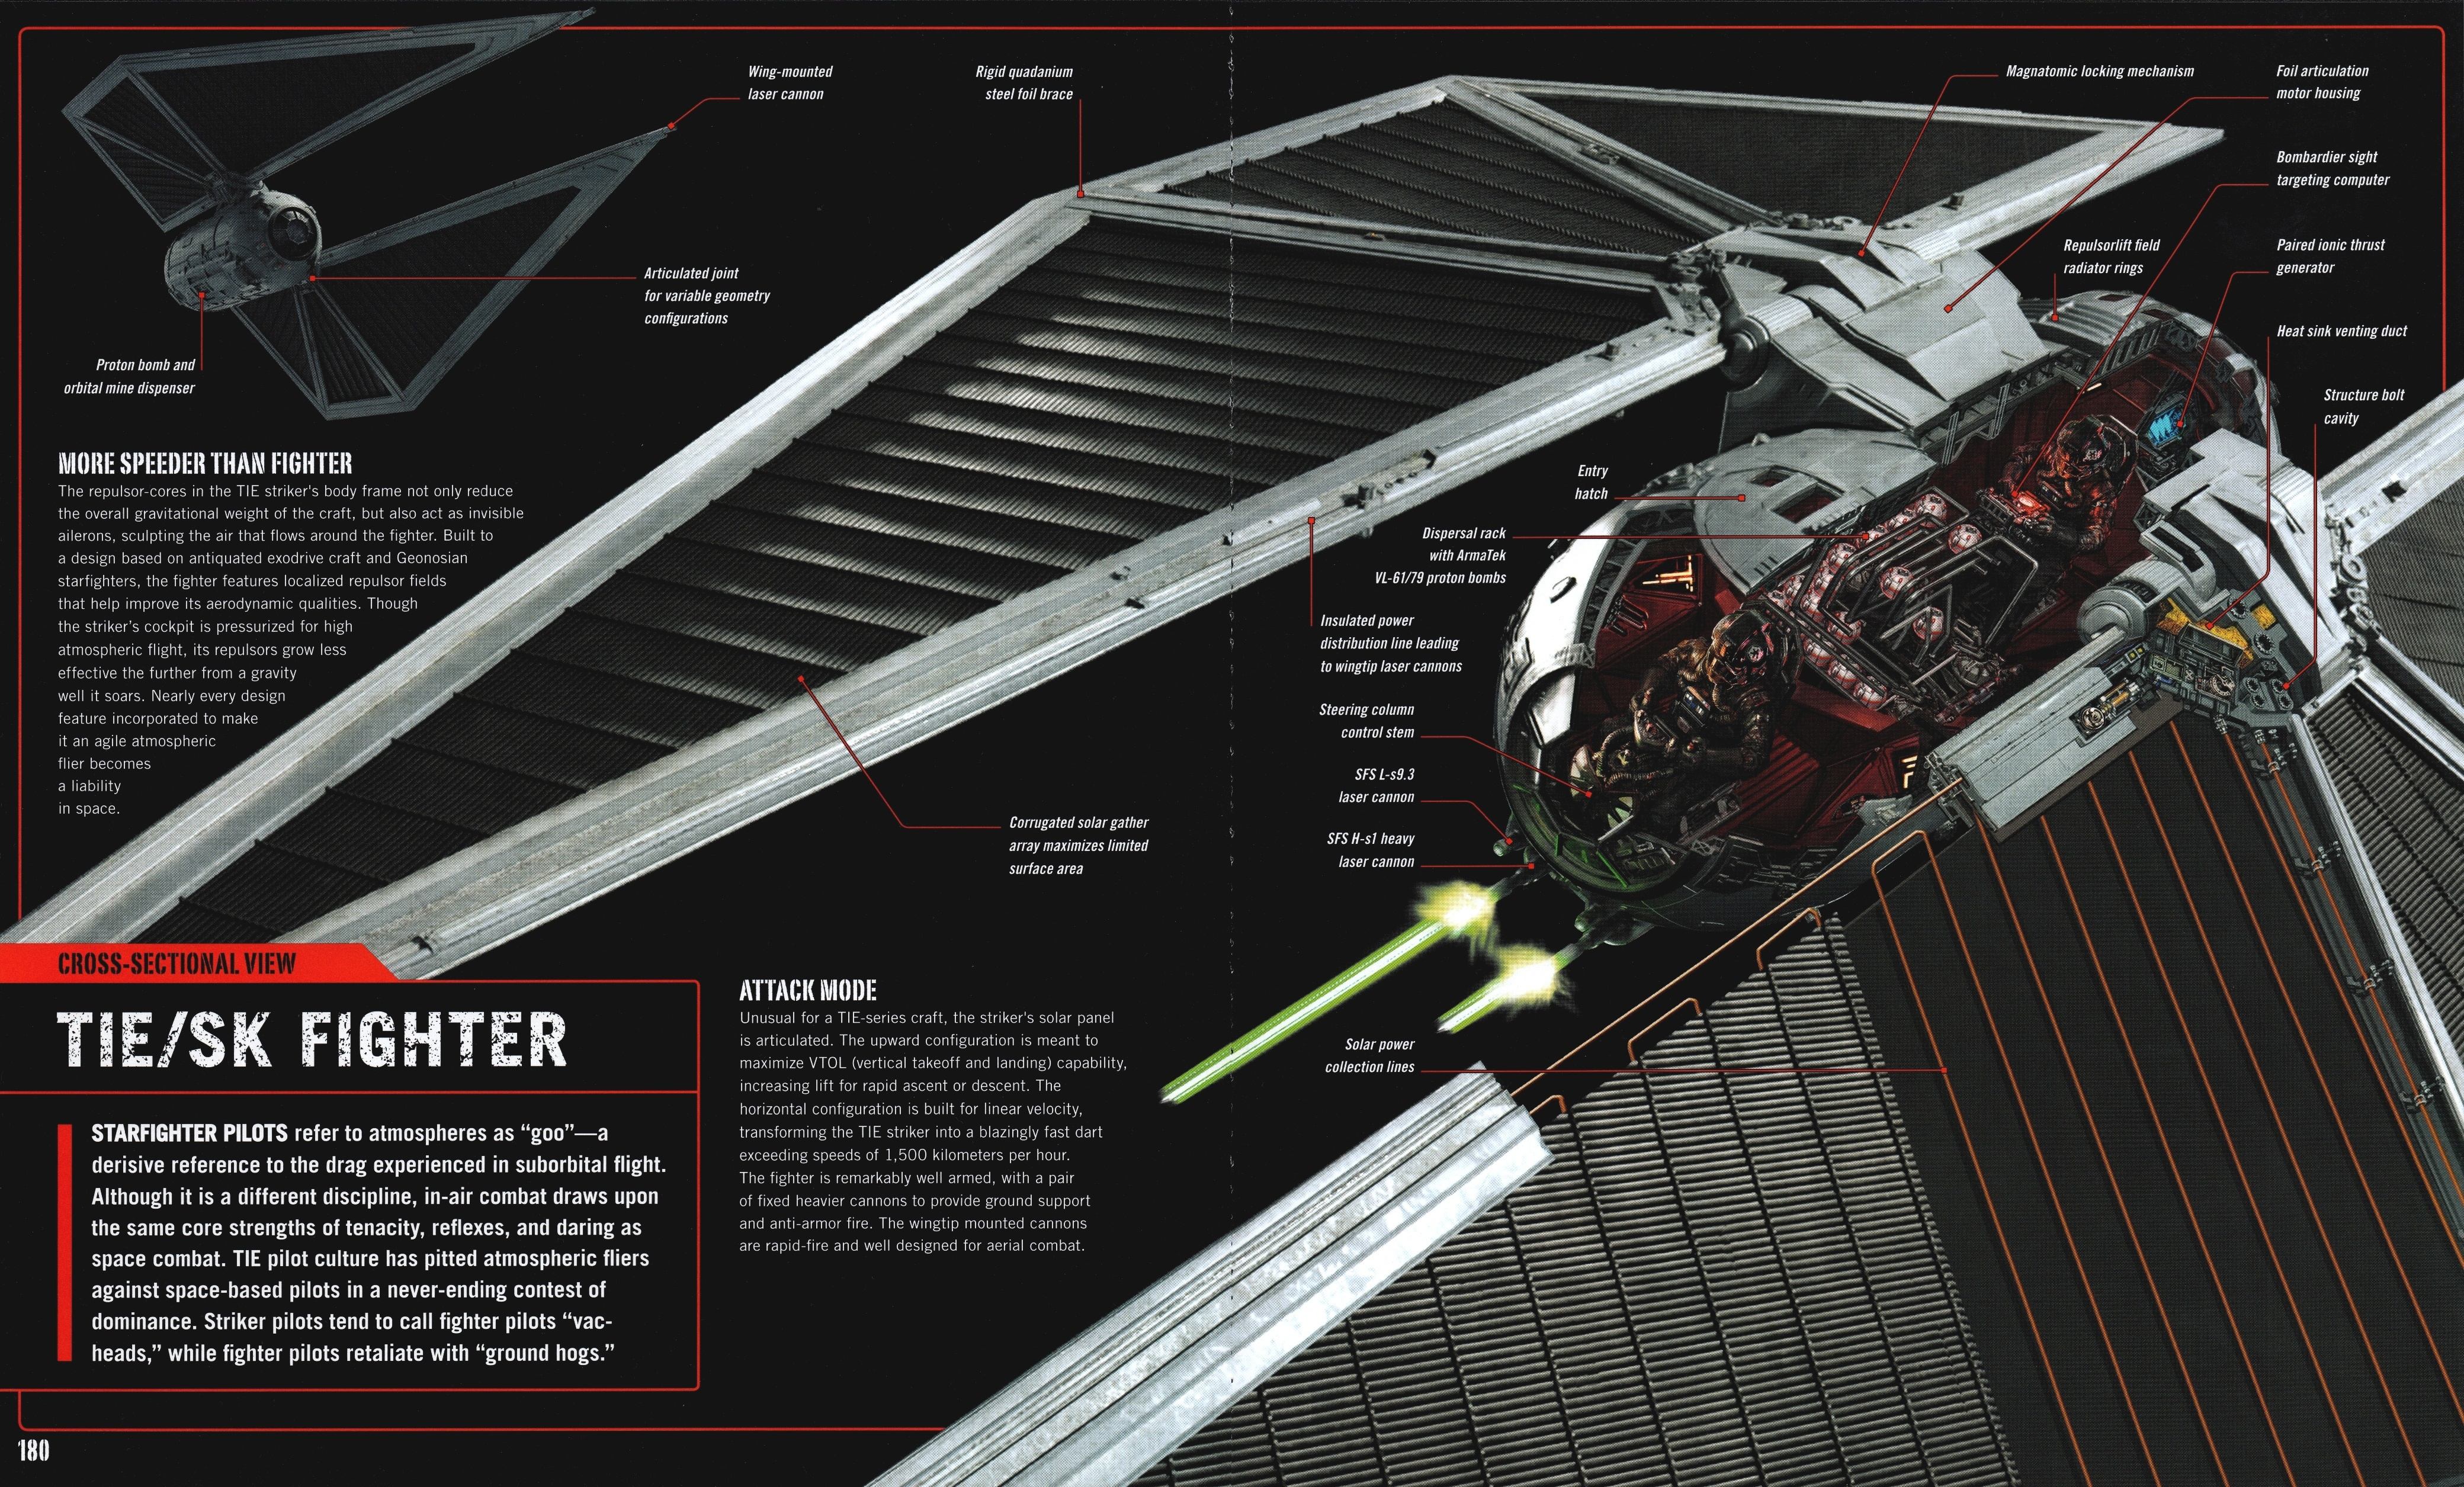 Rogue One Ultimate Visual Guide (b0bafett_Empire) p180-181